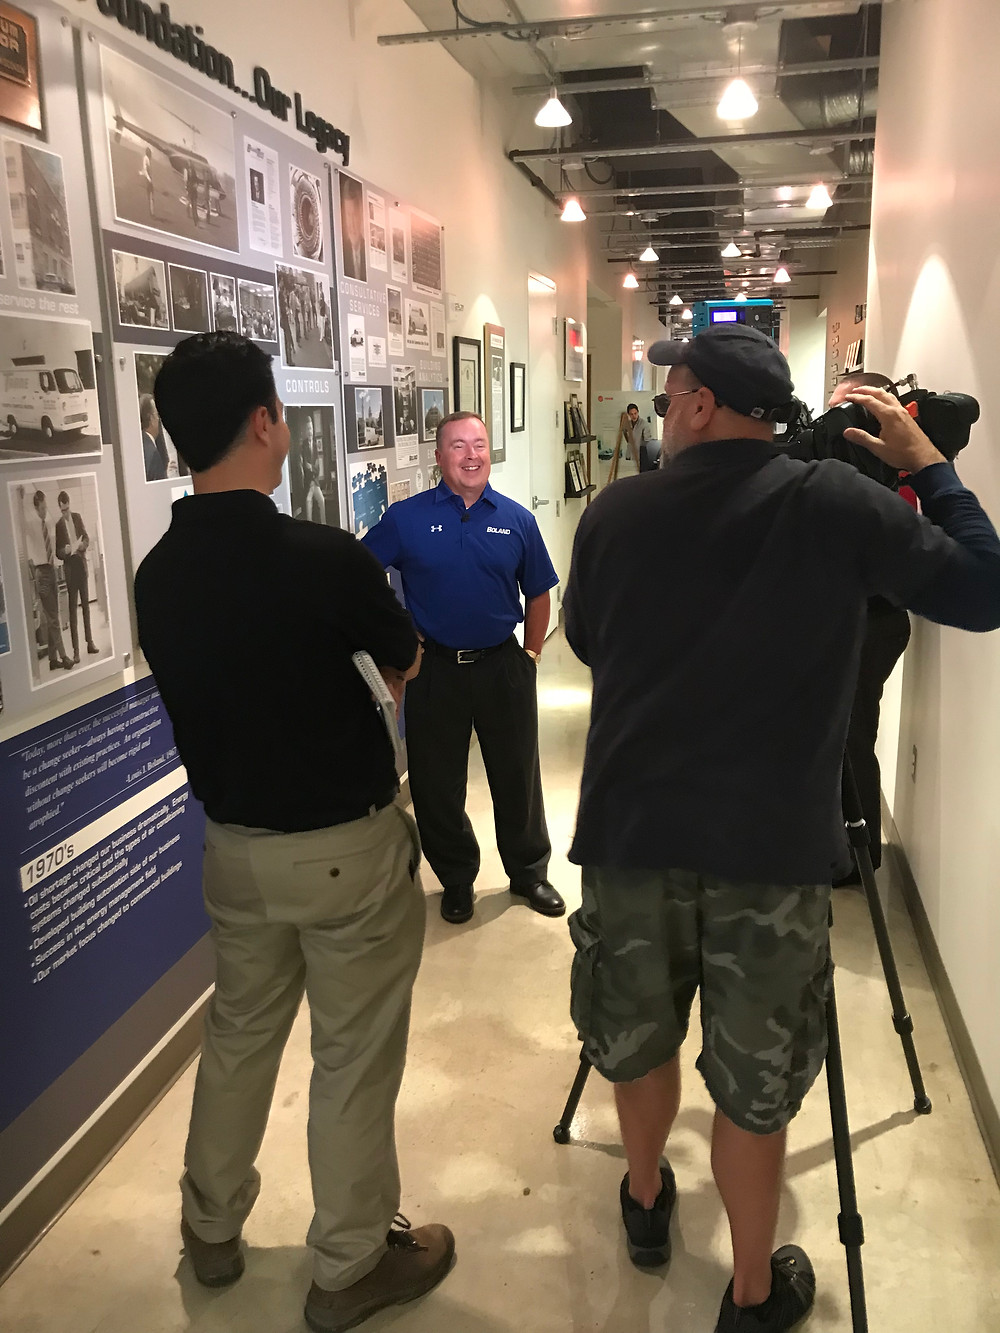 Boland's Jerry Taylor Interviewed by Nathan Baca, Investigative Reporter from WJLA